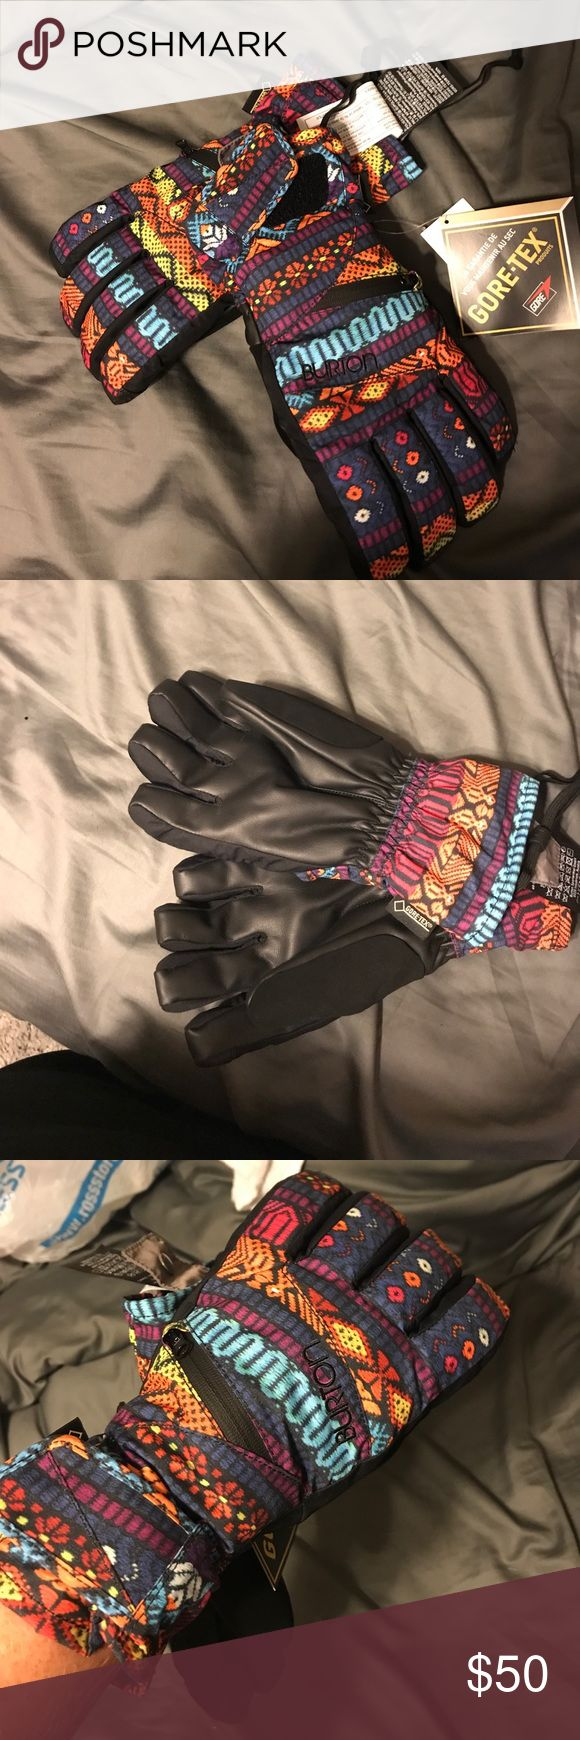 Gore-tex womens snowboarding gloves Women's size large tribal print snowboarding gloves. Never worn tags attached. (Listing matching mittens and undergloves separately) Gore-tex Accessories Gloves & Mittens